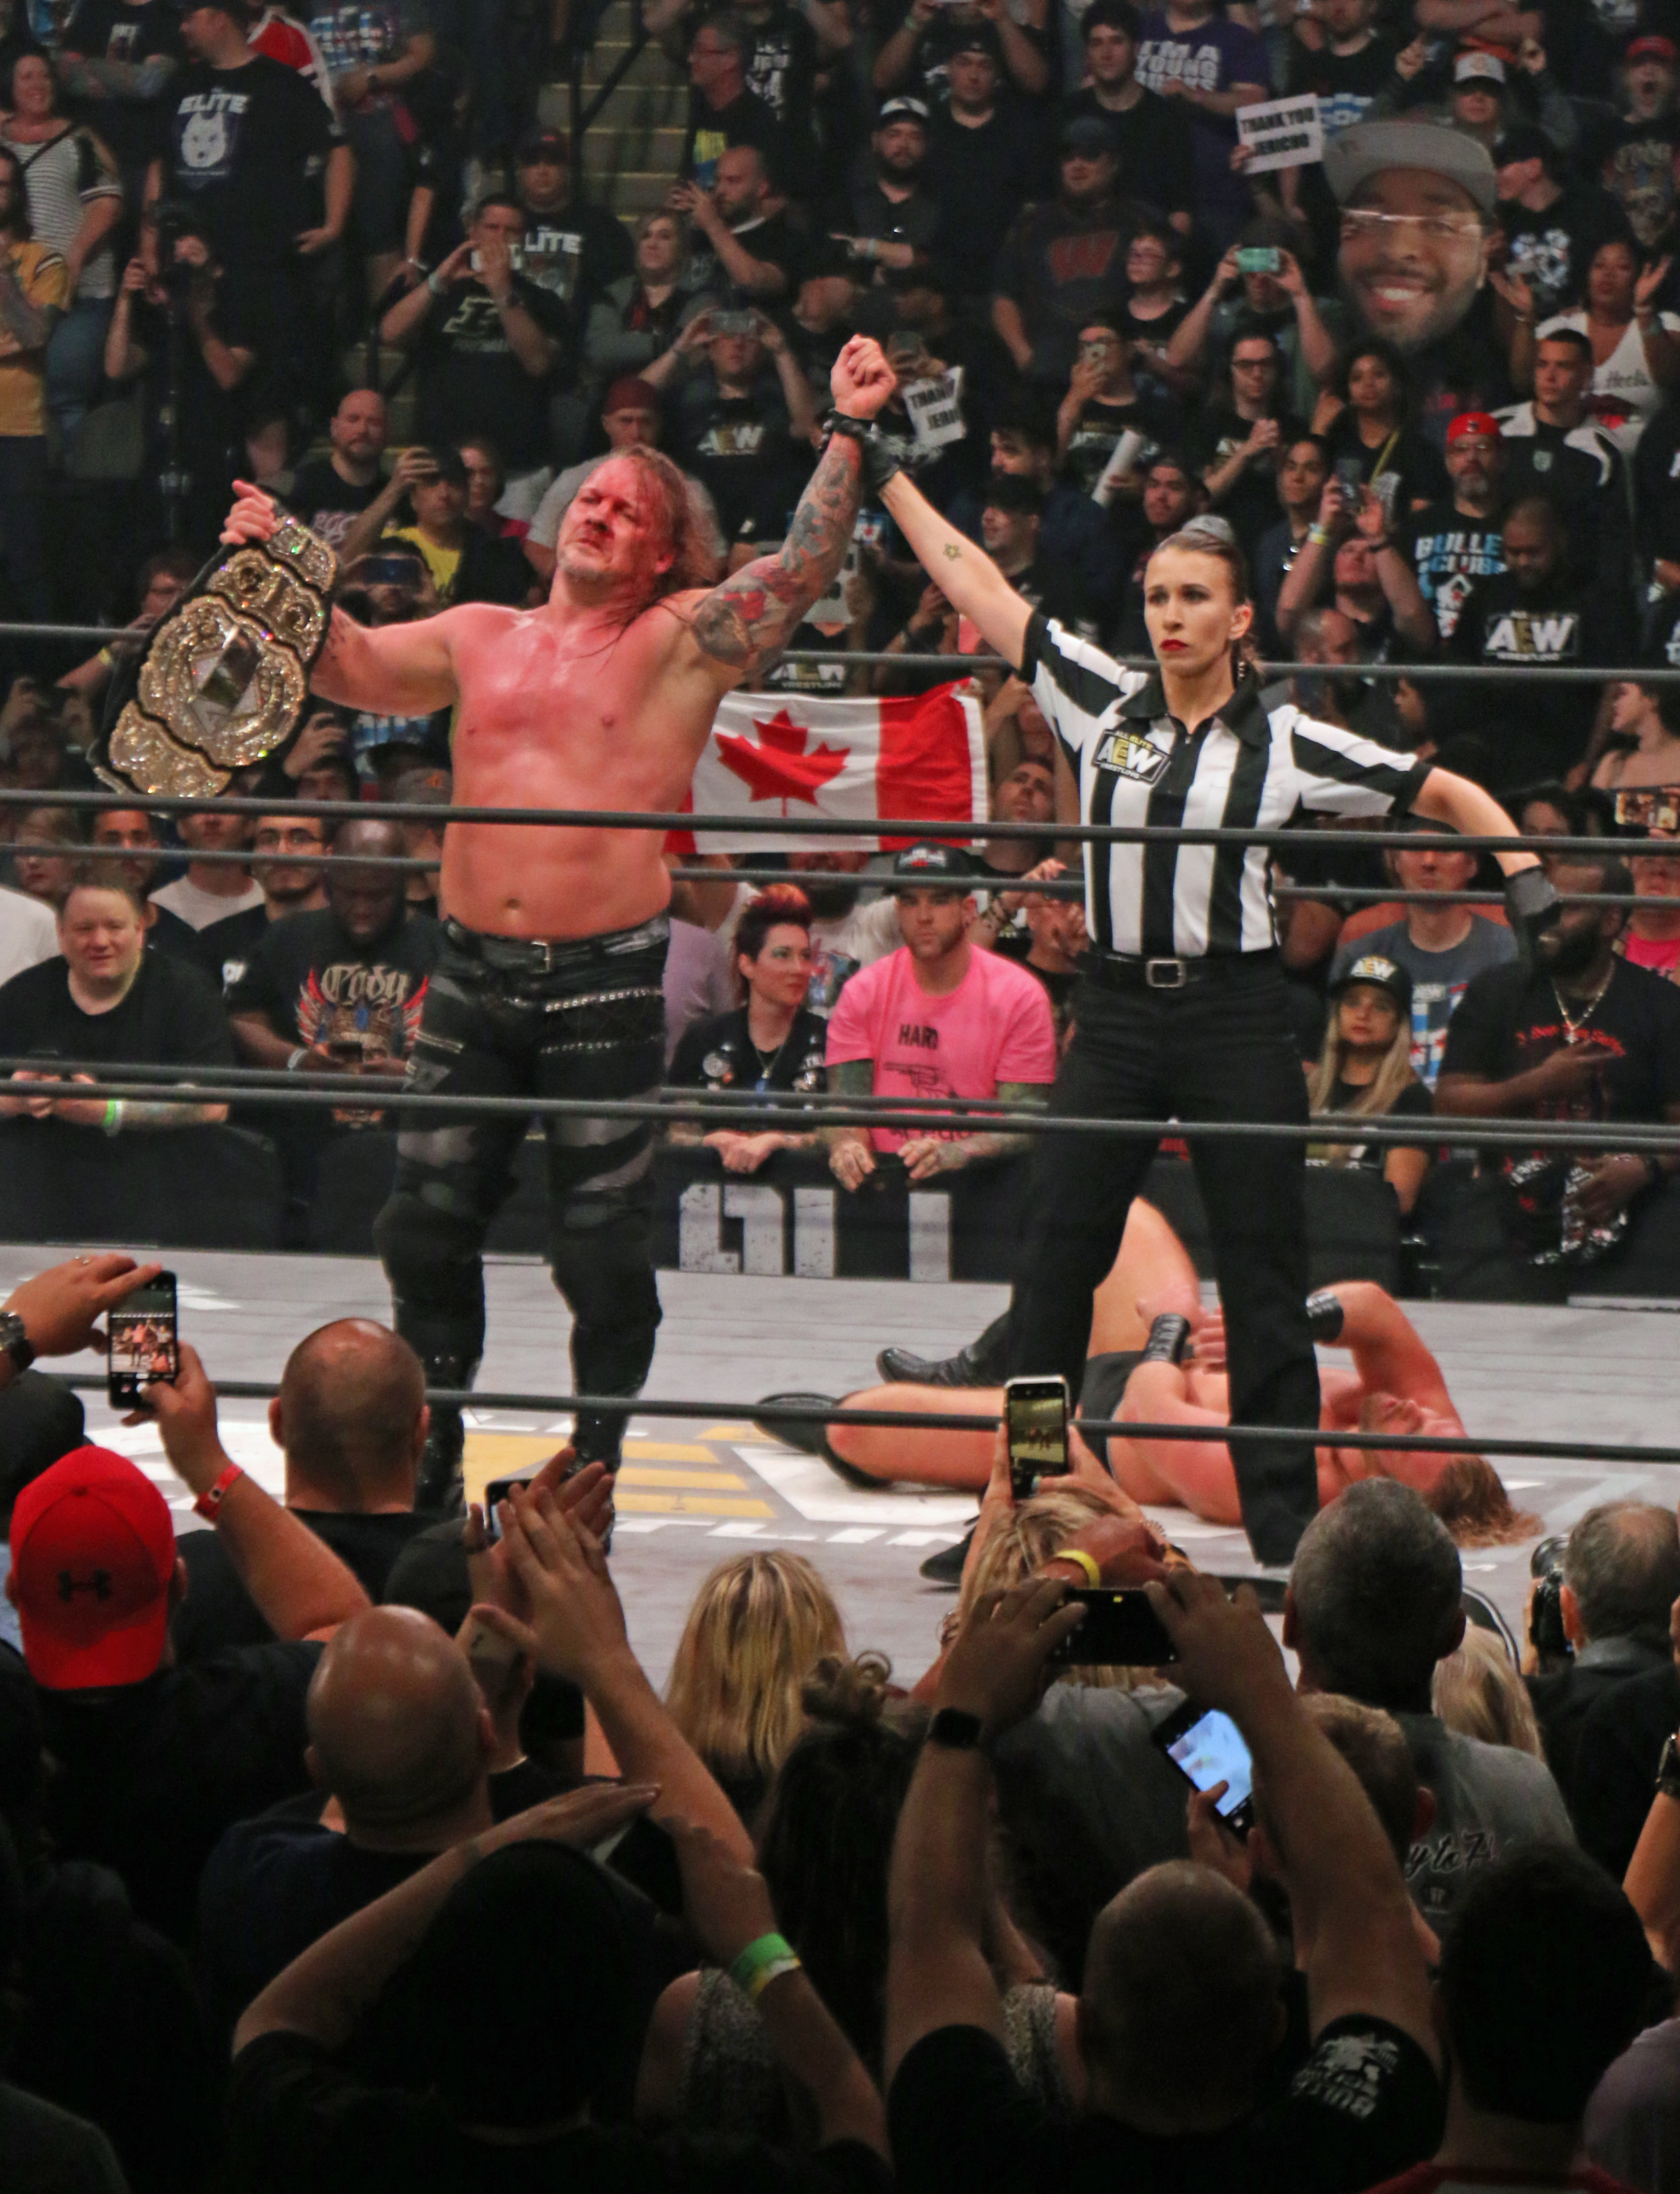 Referee Aubrey Edwards raises the hand of Chris Jericho, the first-ever AEW Champion.